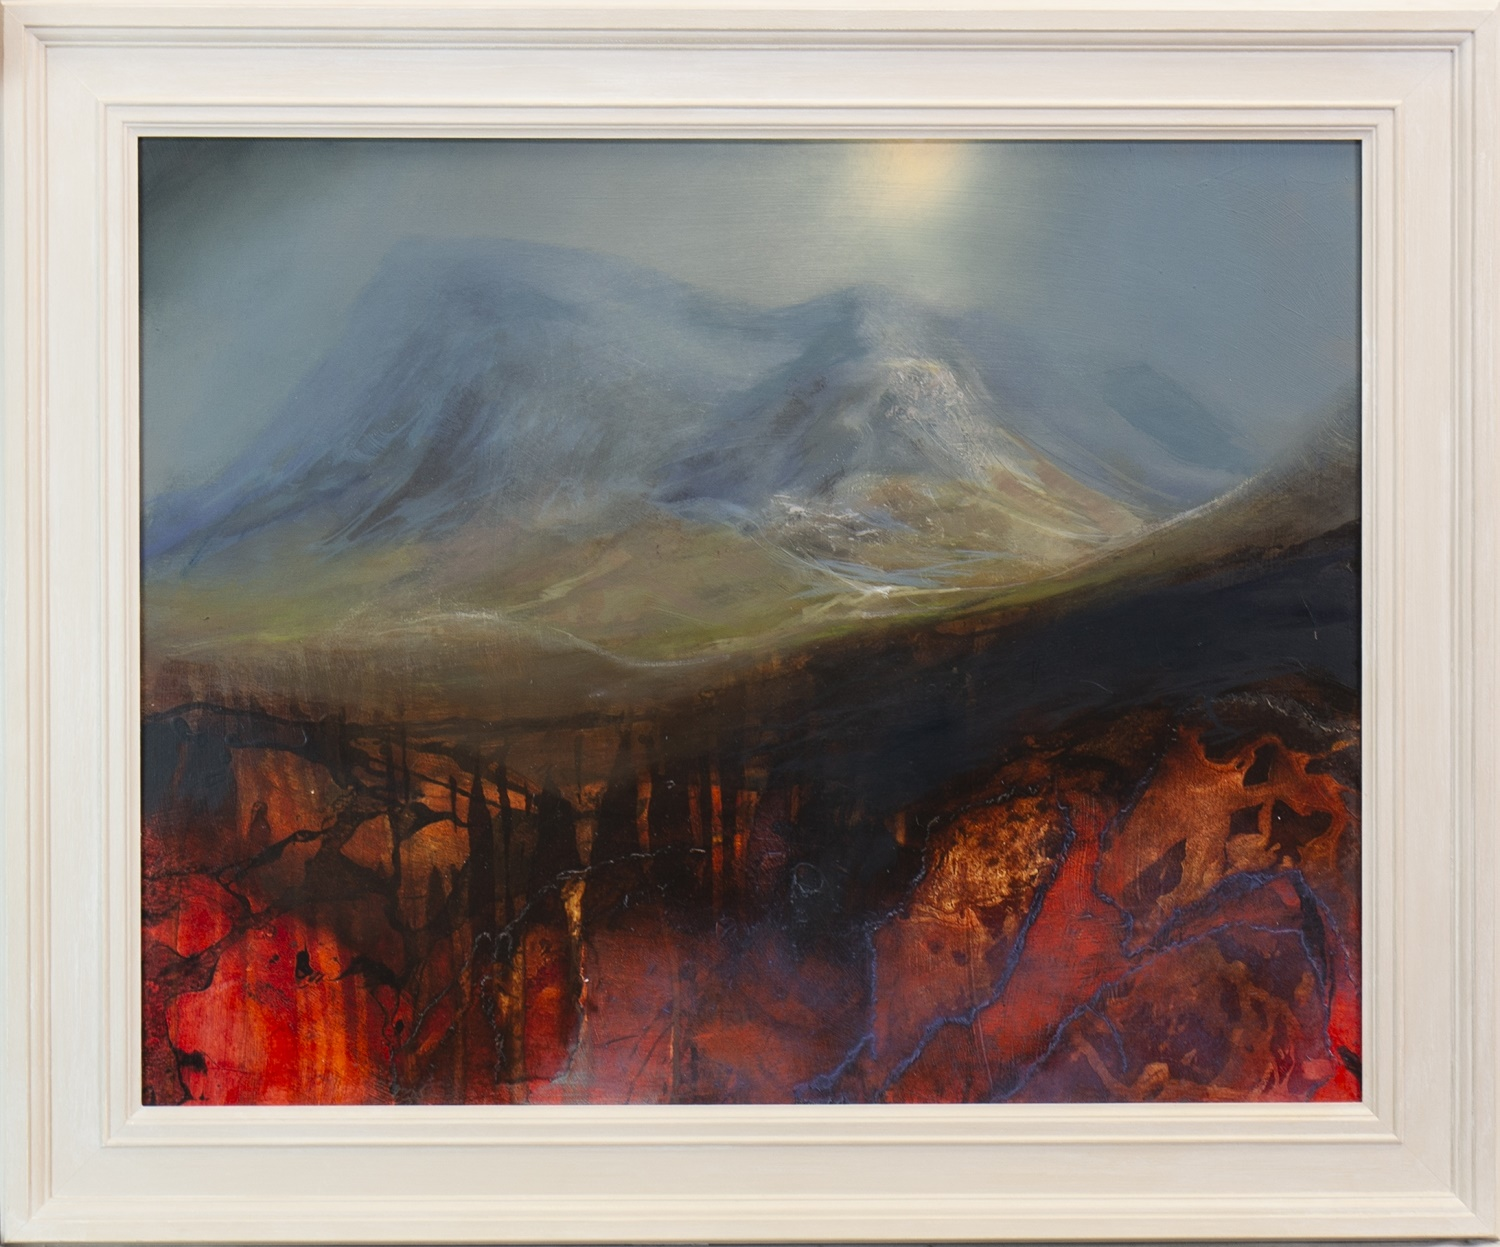 Lot 509 - BUACHAILLE ETIVE MORE, A MIXED MEDIA BY BETH ROBERTSON FIDDES